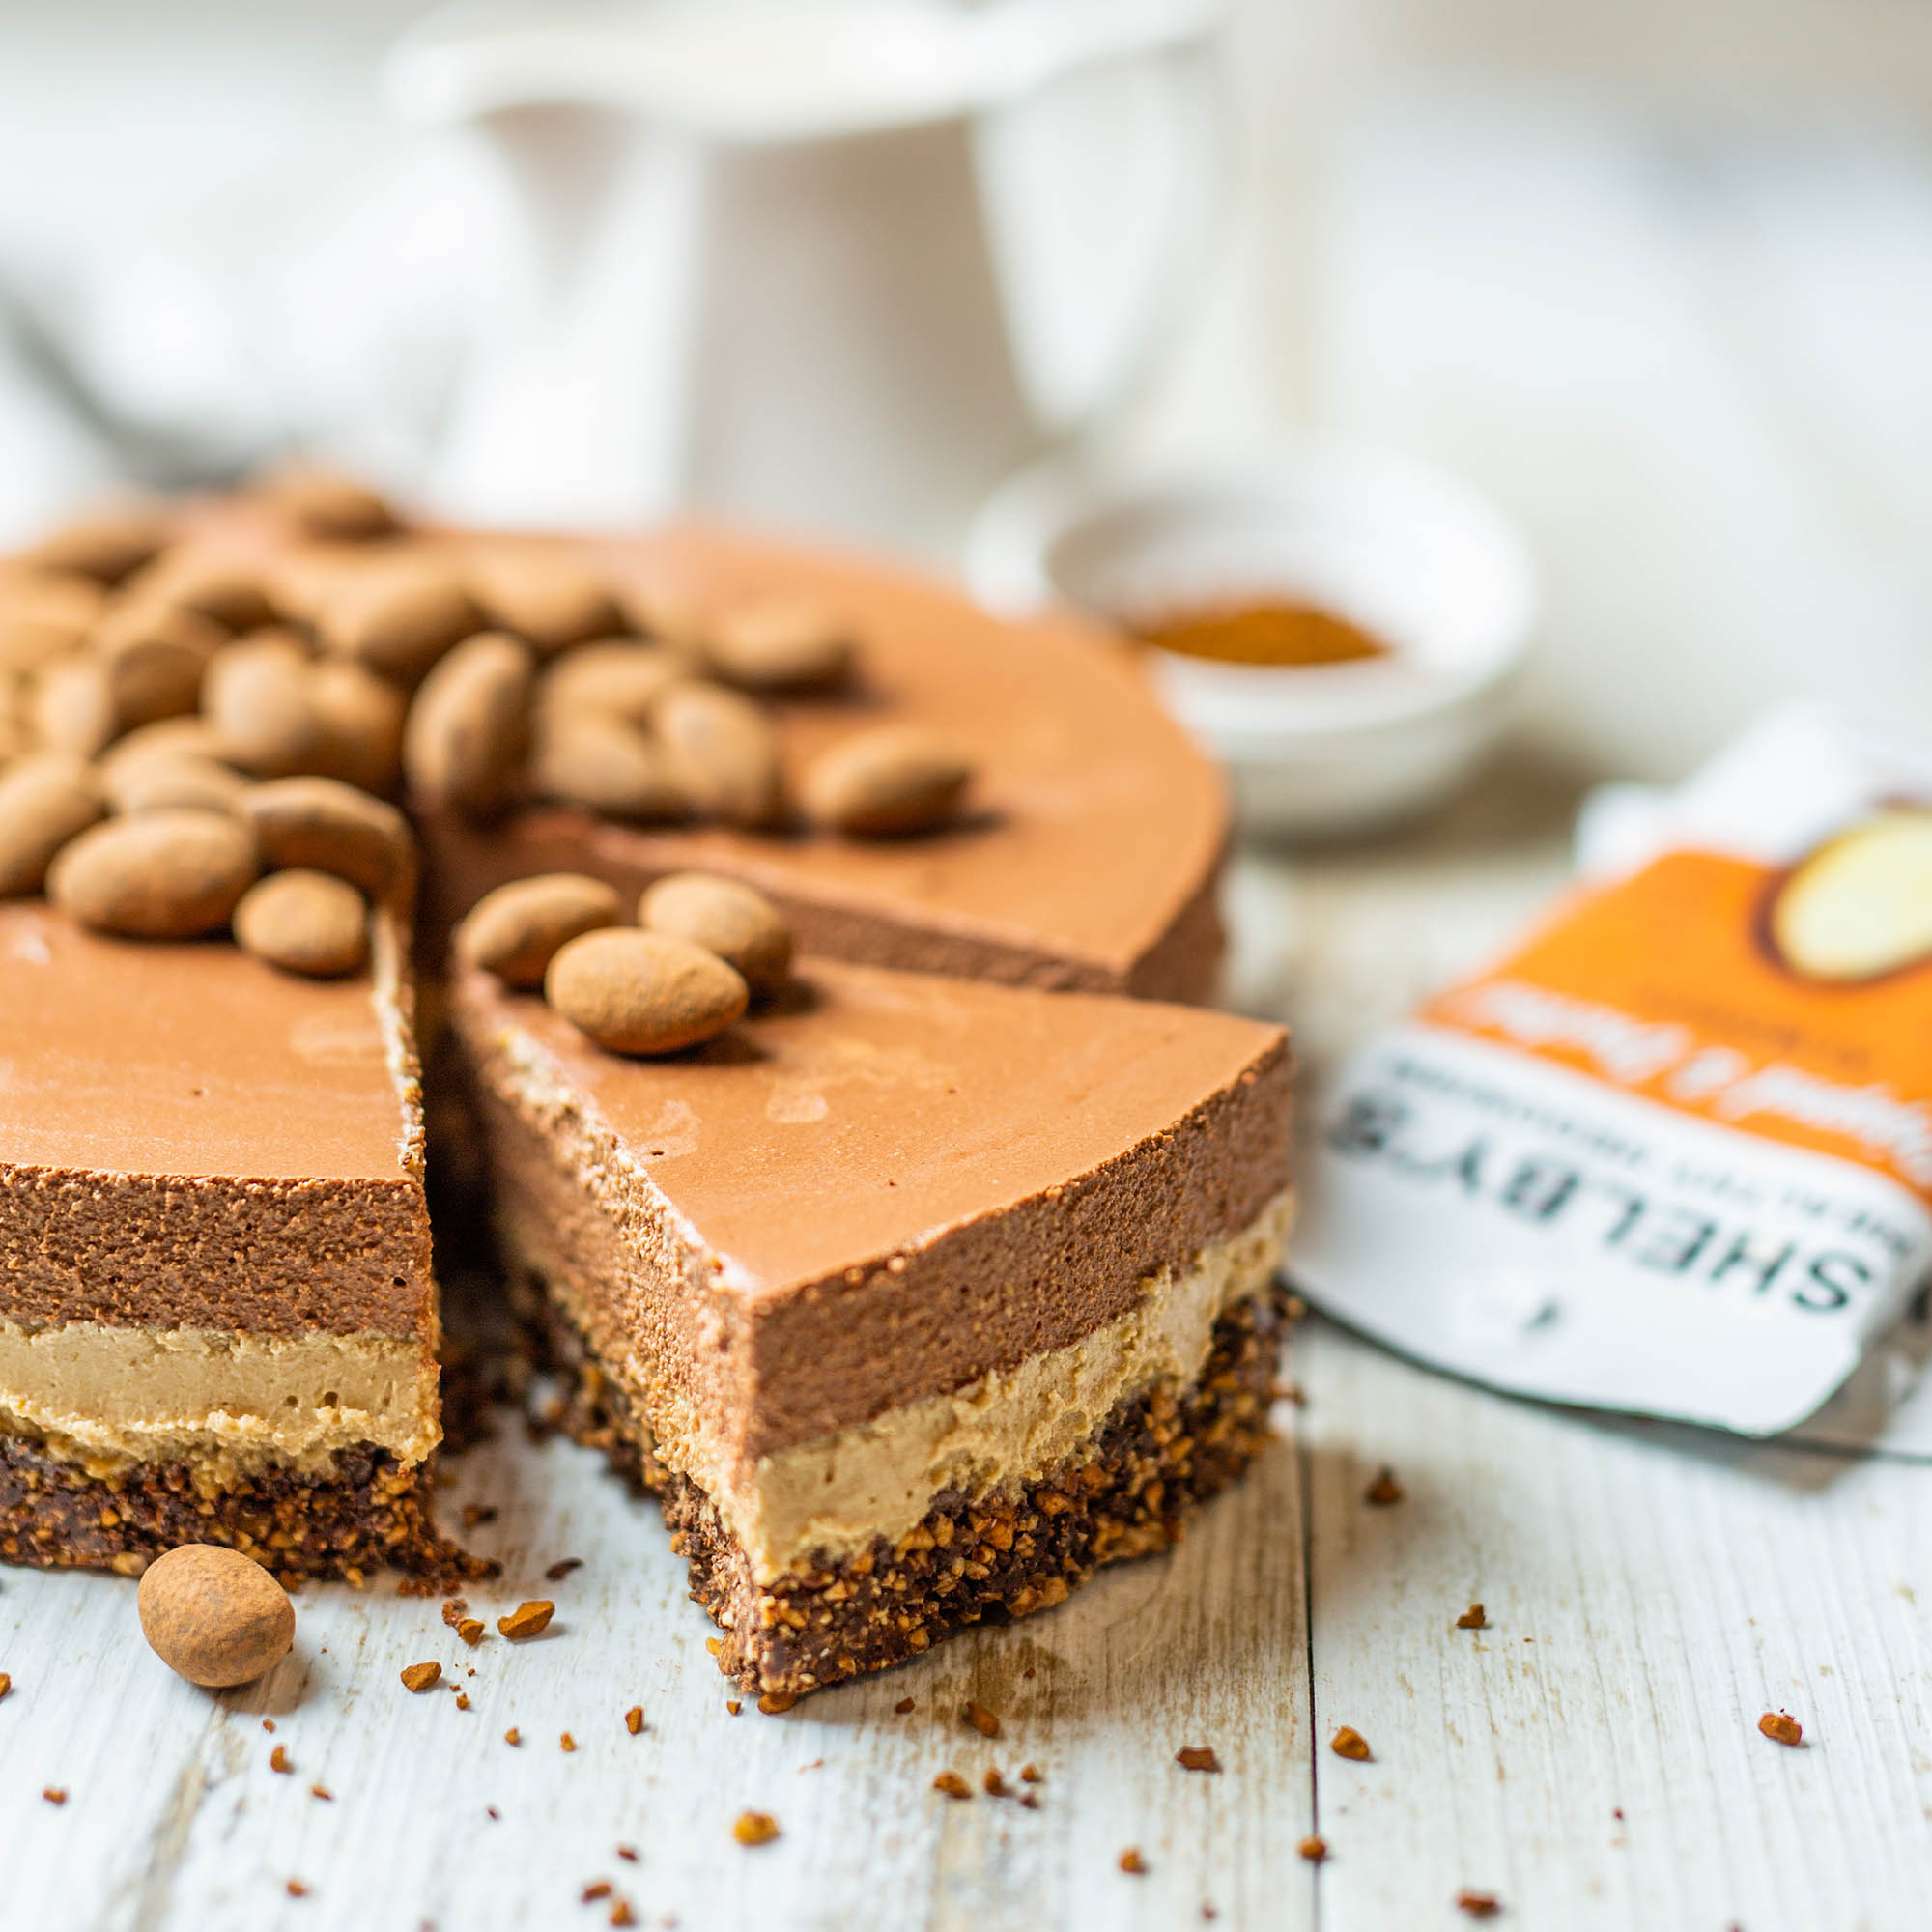 No Bake Vegan Mocha Cake using Shelby's Healthy Hedonism Espresso Almonds